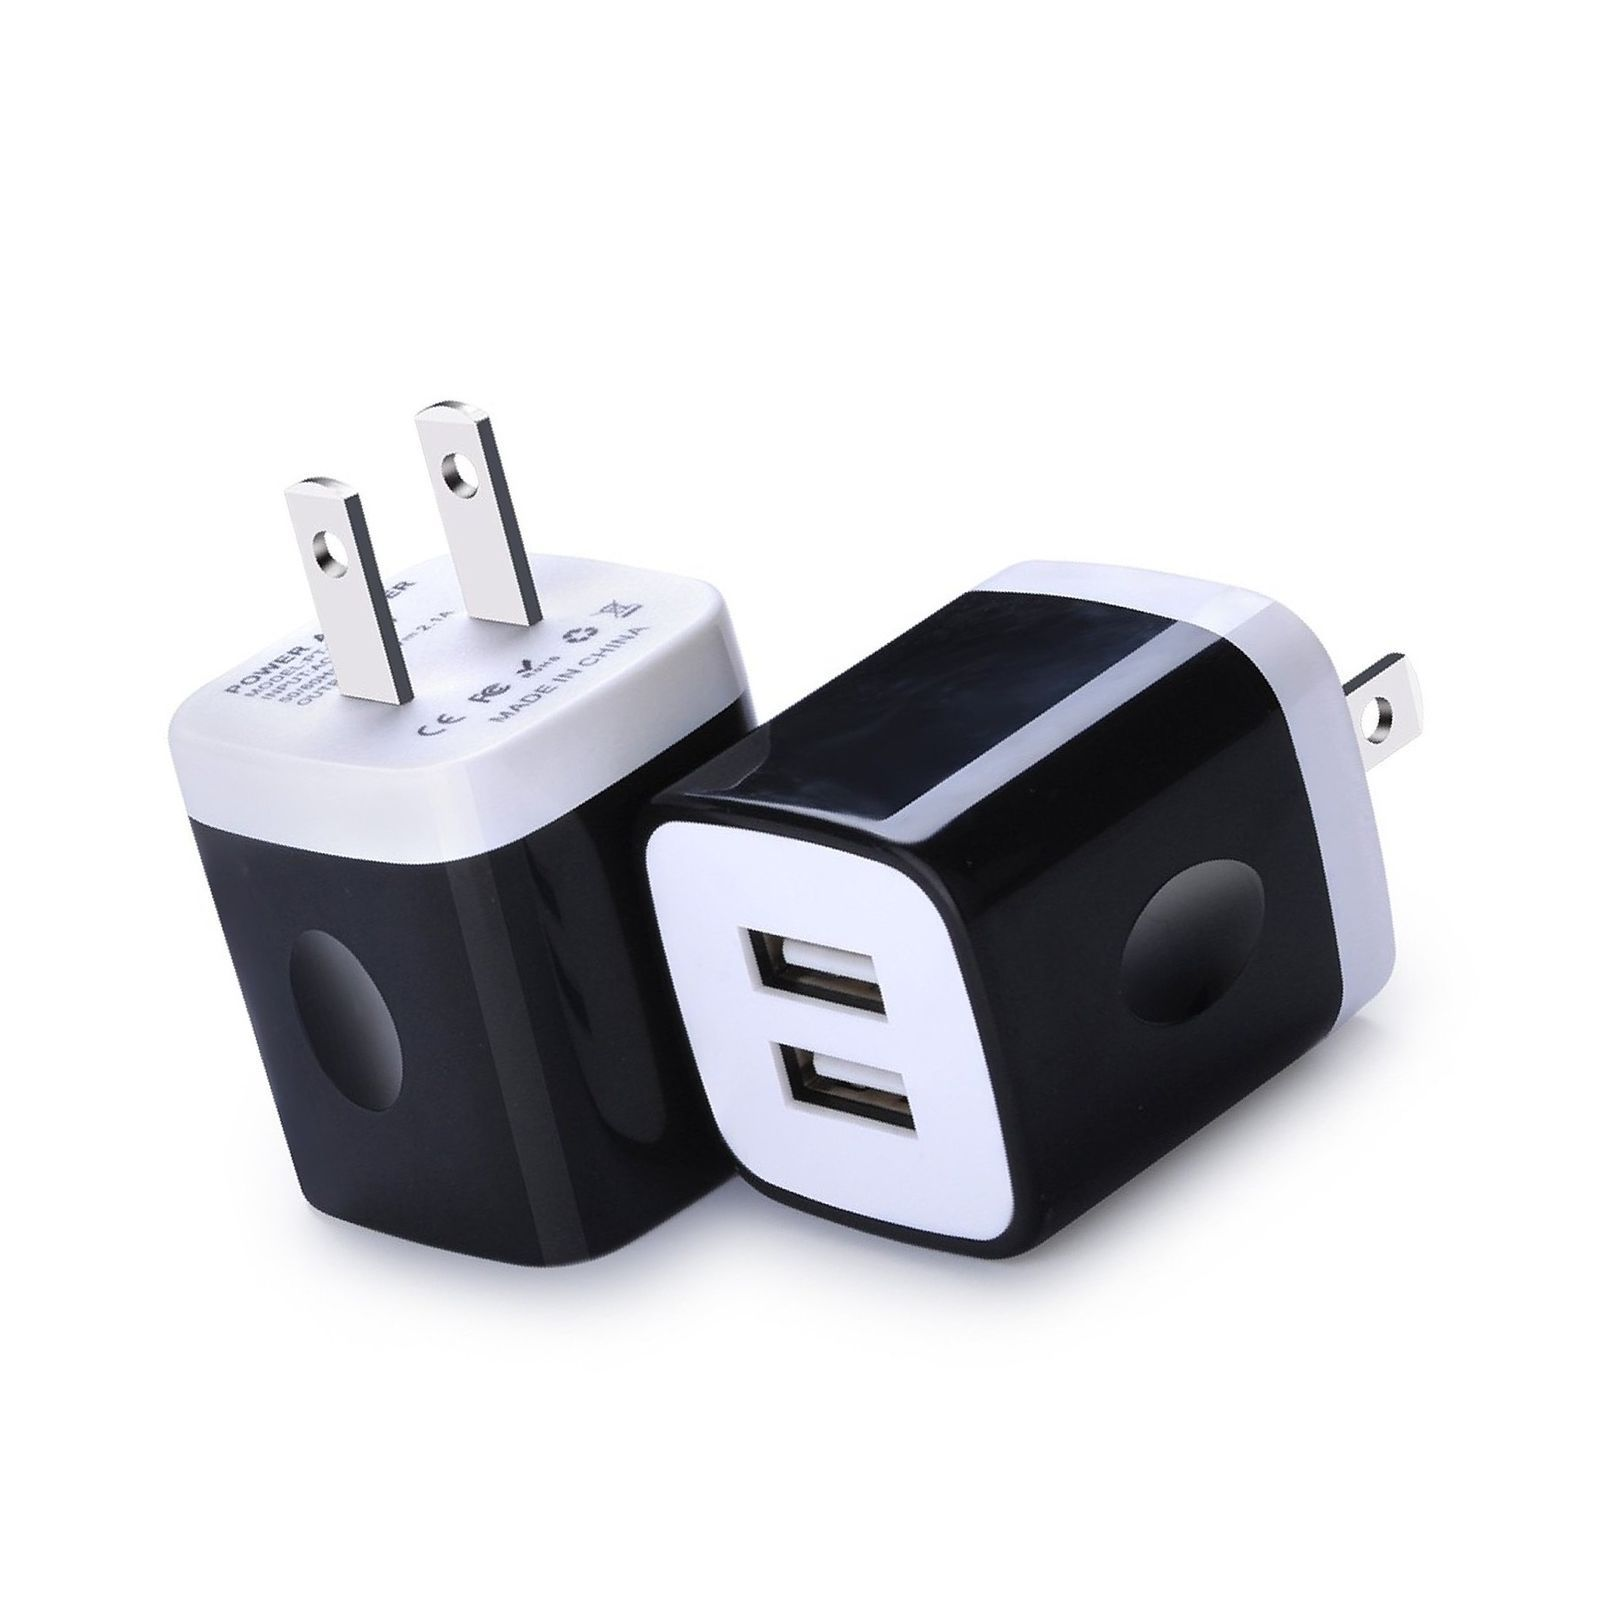 Wall Charger, Charging Block Brick, FiveBox 2-Pack Dual Port 2.1A USB Wall Ch...